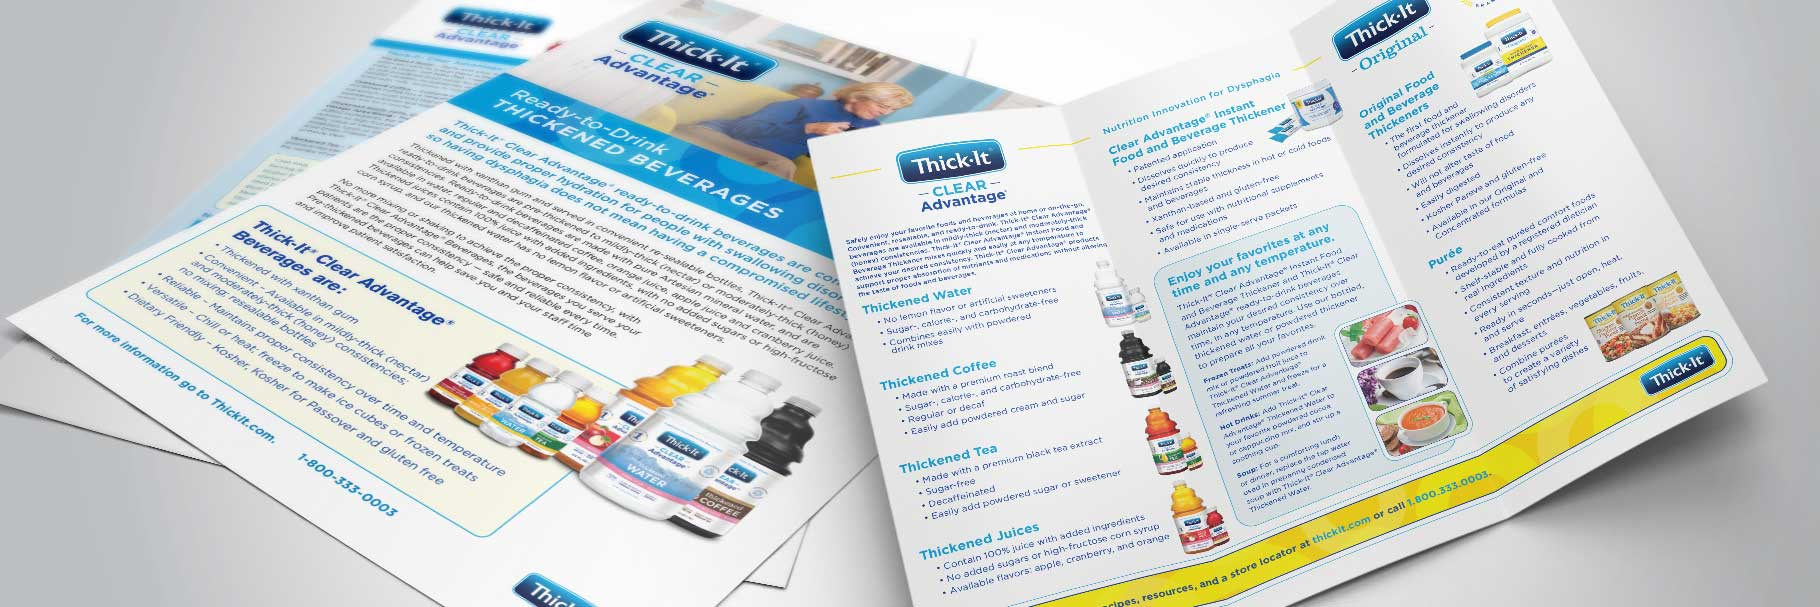 Thick-It brochure designs sitting on a table